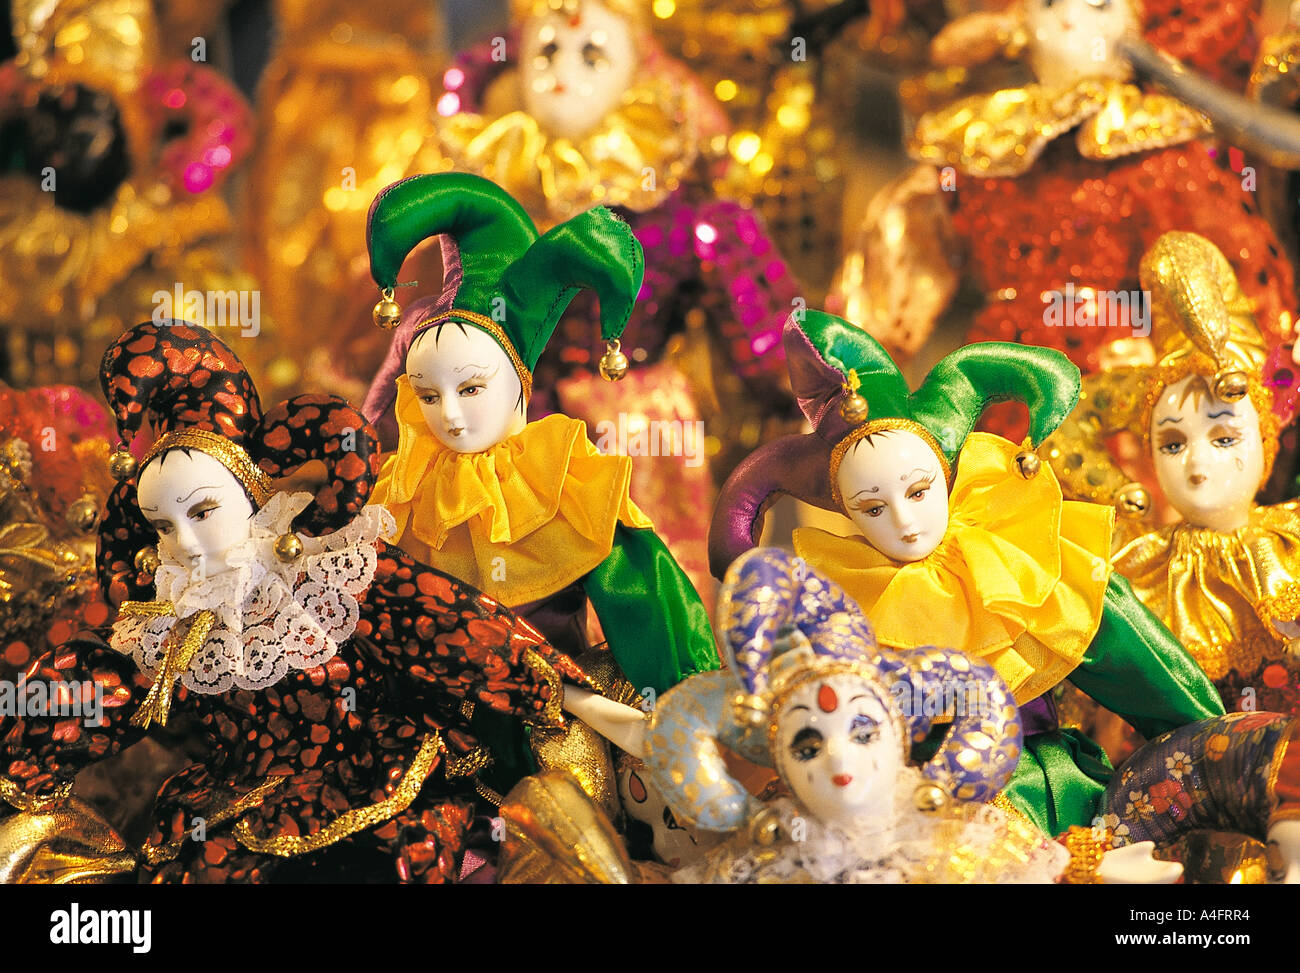 Karneval-Puppen in New Orleans Stockbild